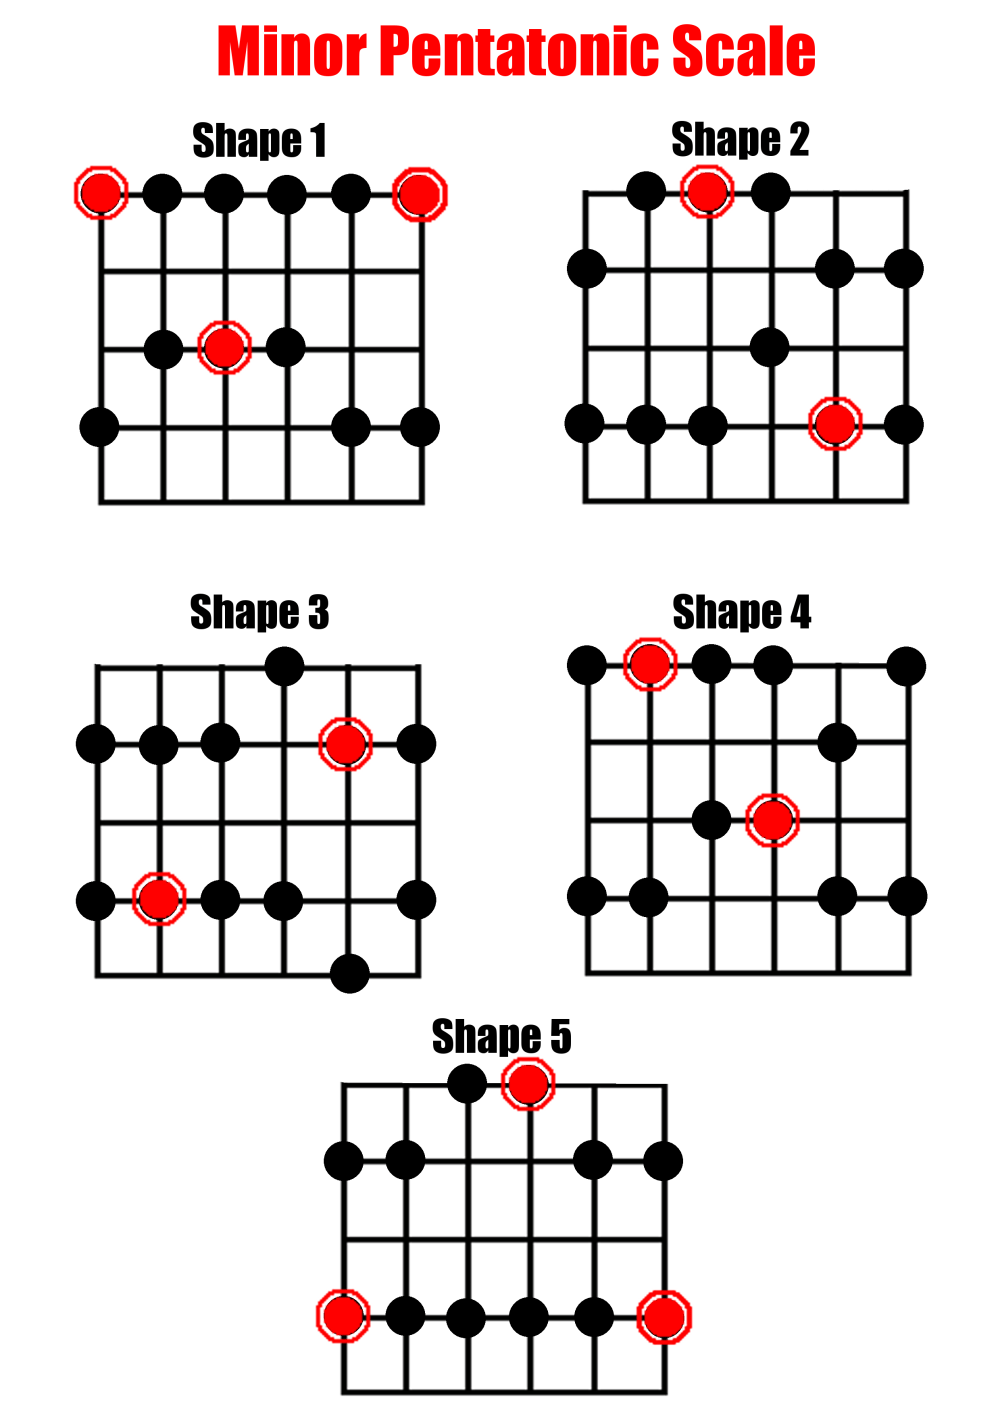 medium resolution of full scale diagrams for the minor pentatonic scale on guitar 5 shapes